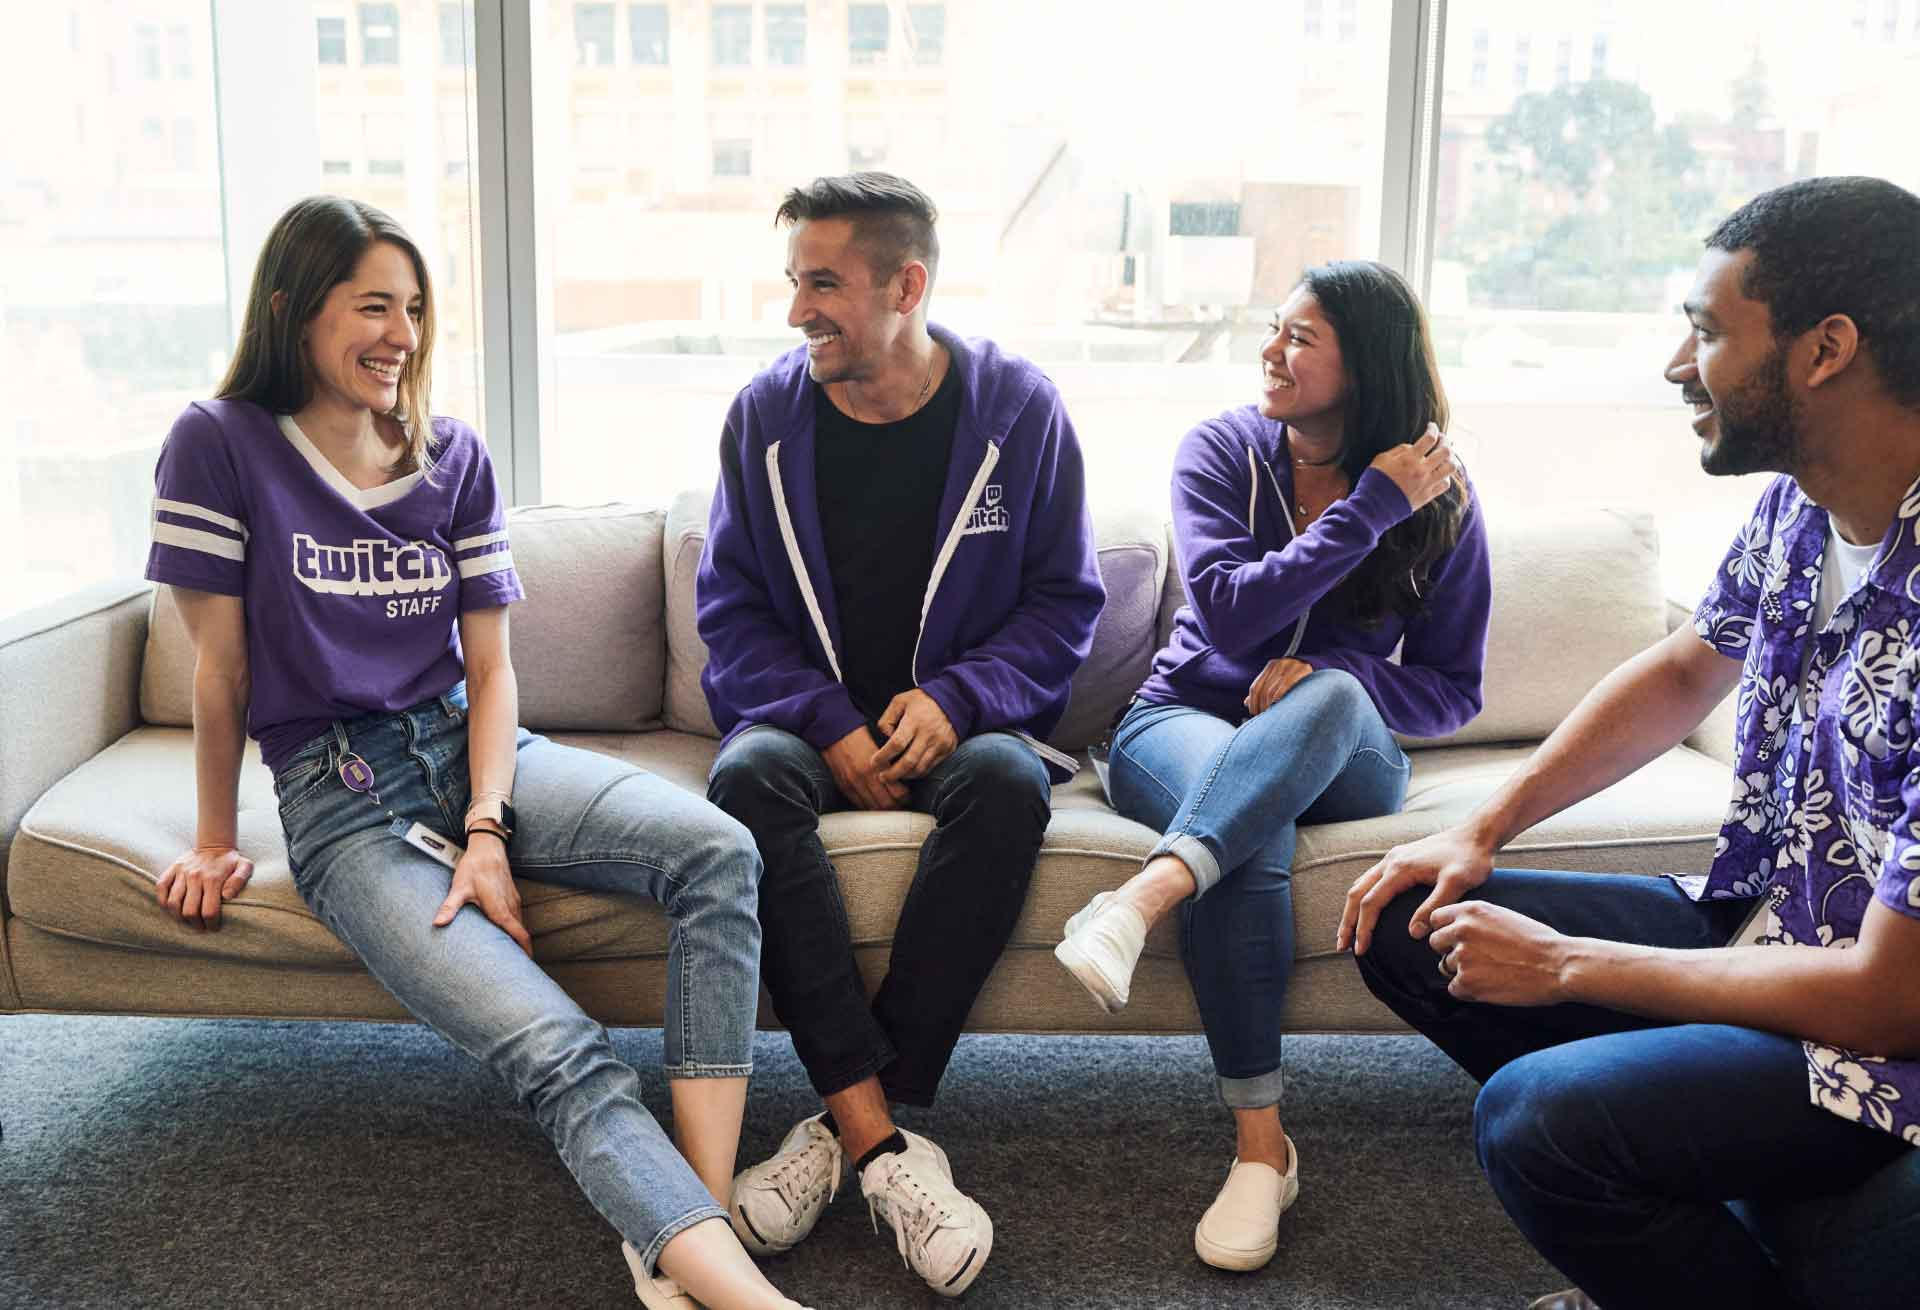 Twitch employees laughing together on a couch